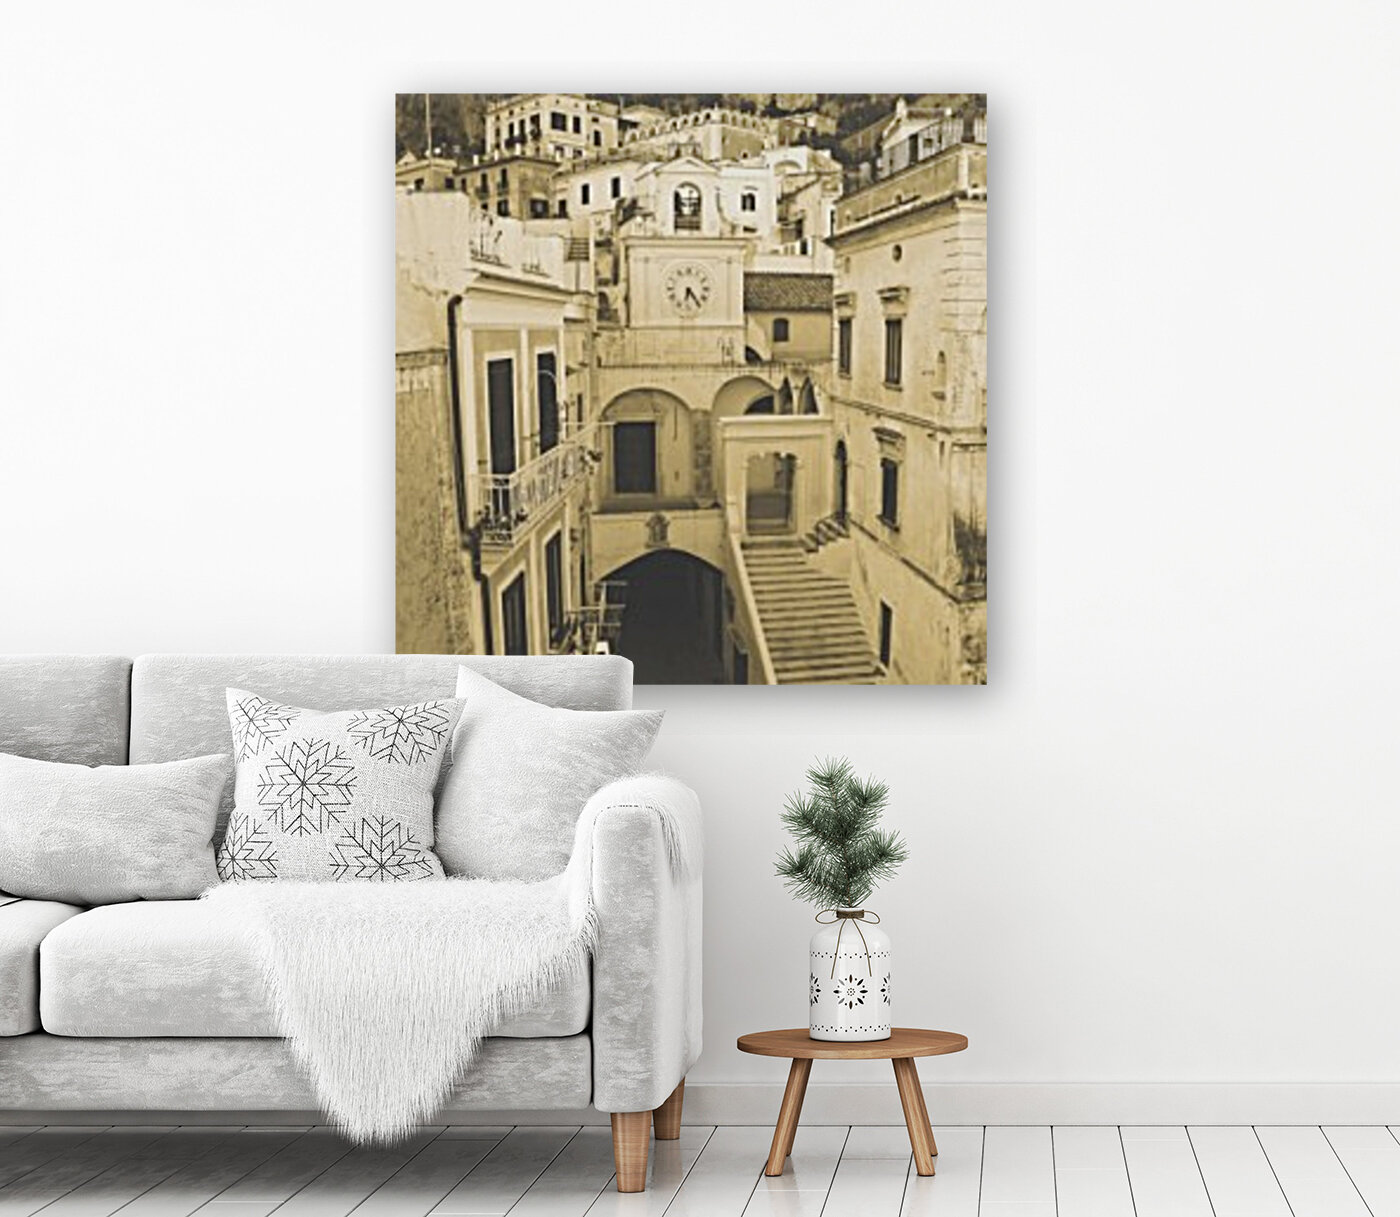 Vintage Style - The village with Floating Frame